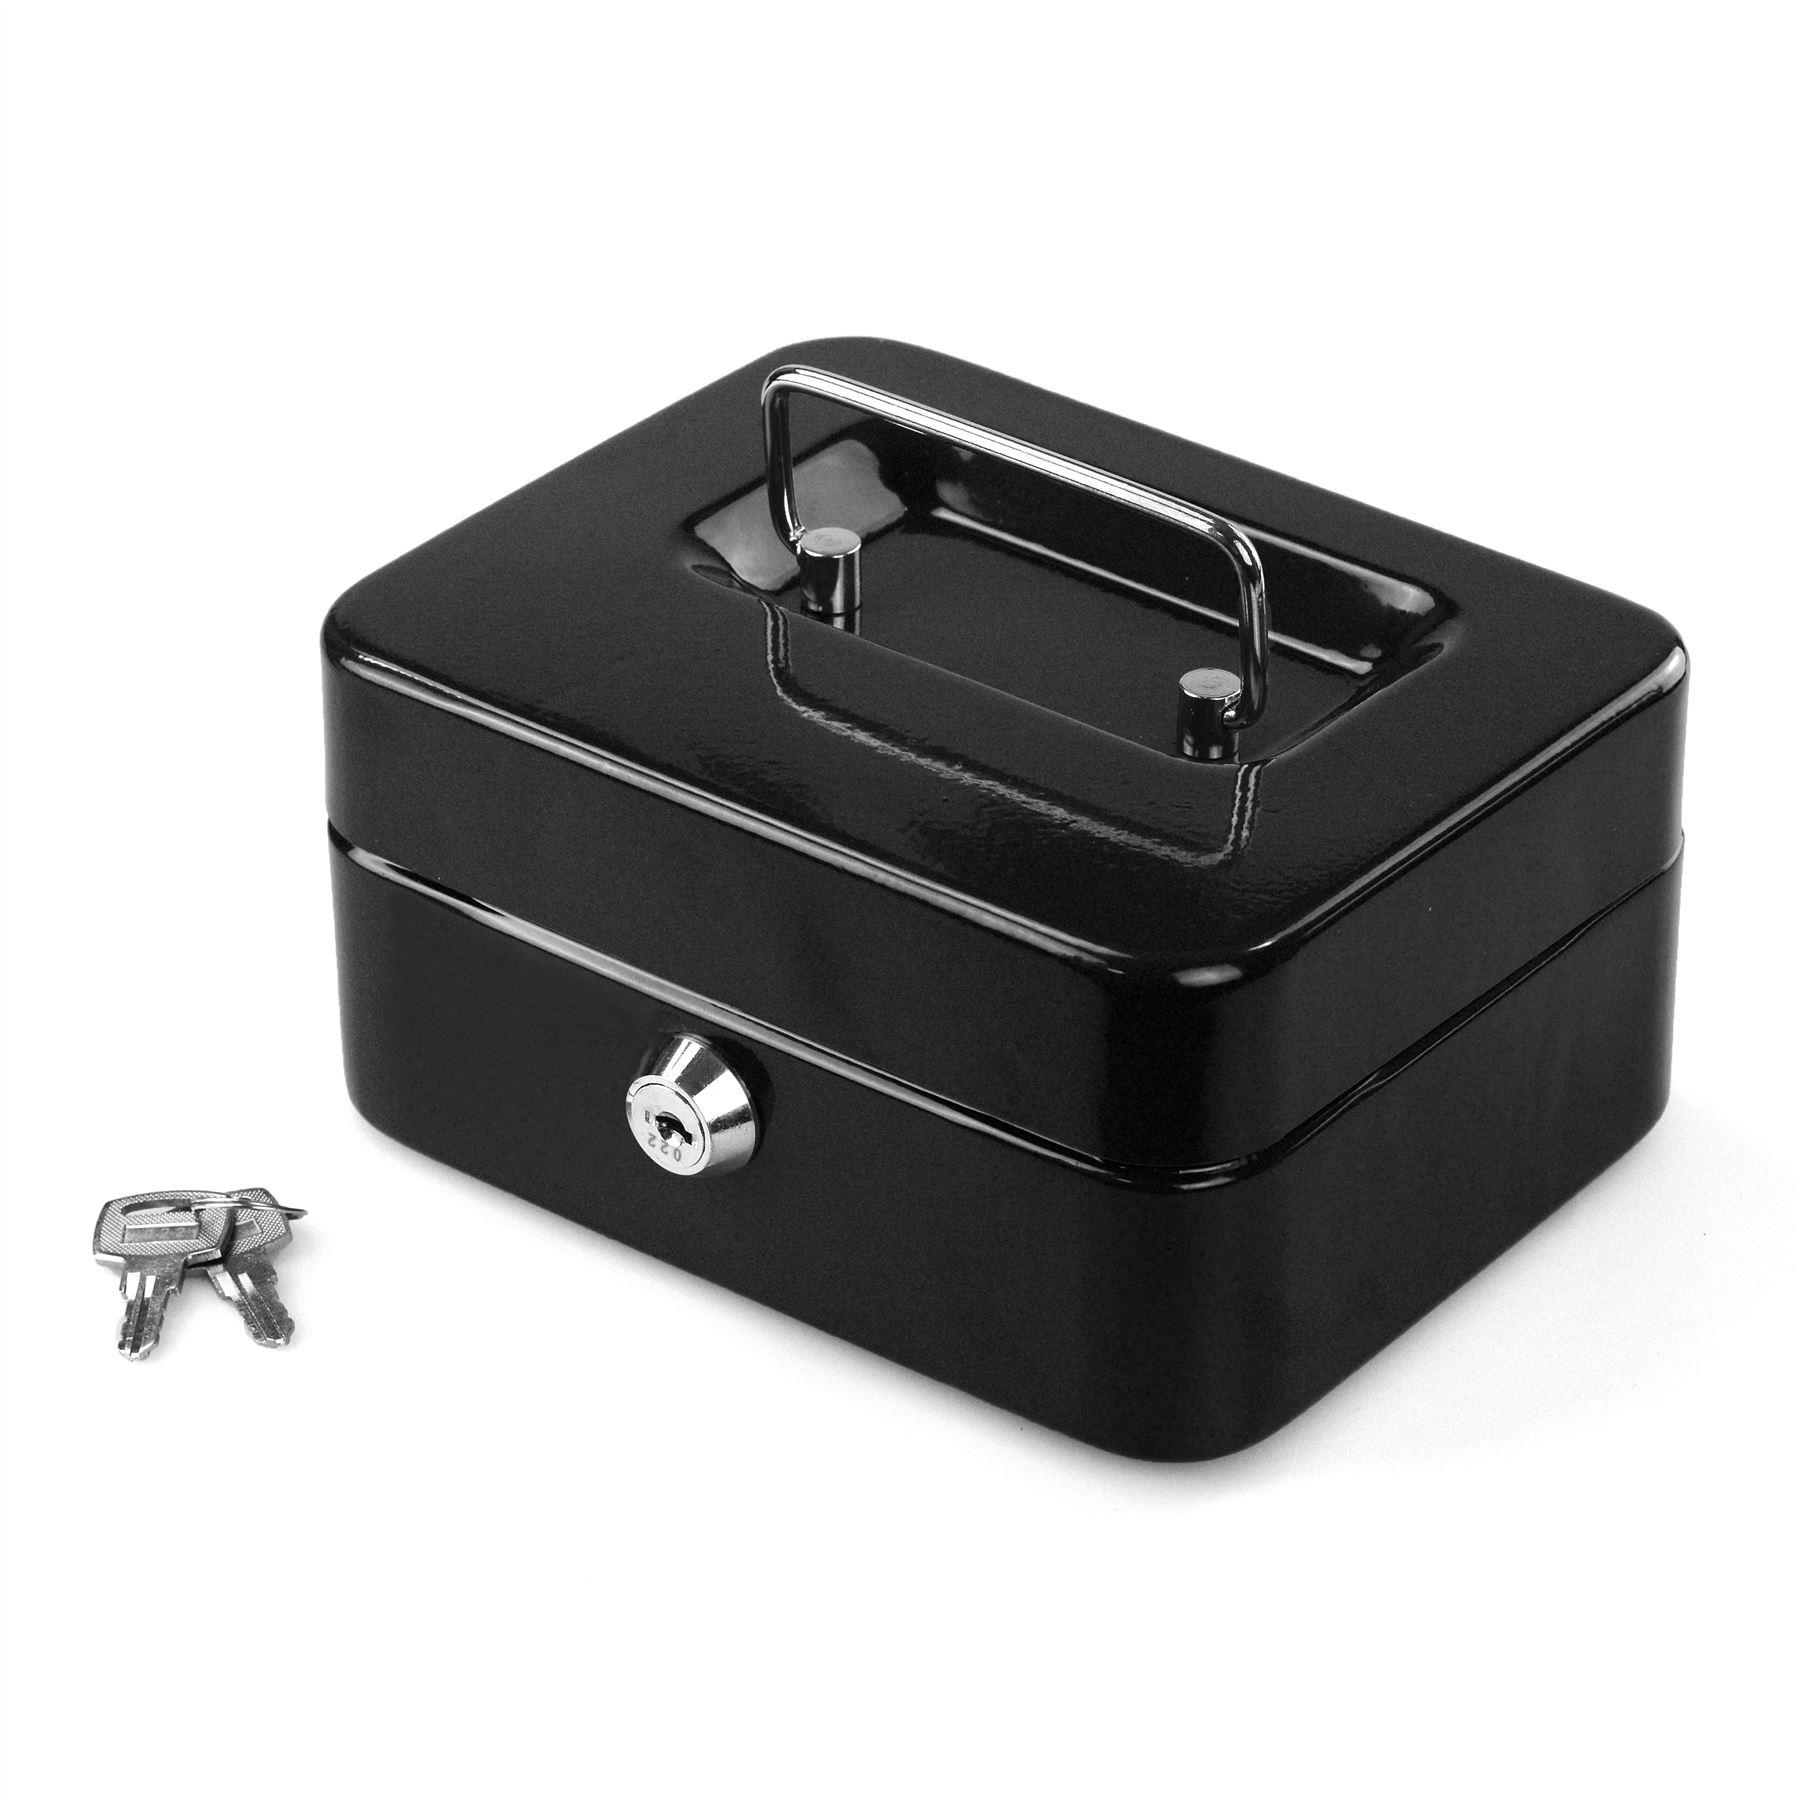 Petty-Cash-Safety-Deposit-Box-Metal-Security-Steel-Money-Bank-Coin-Tray-holder thumbnail 5